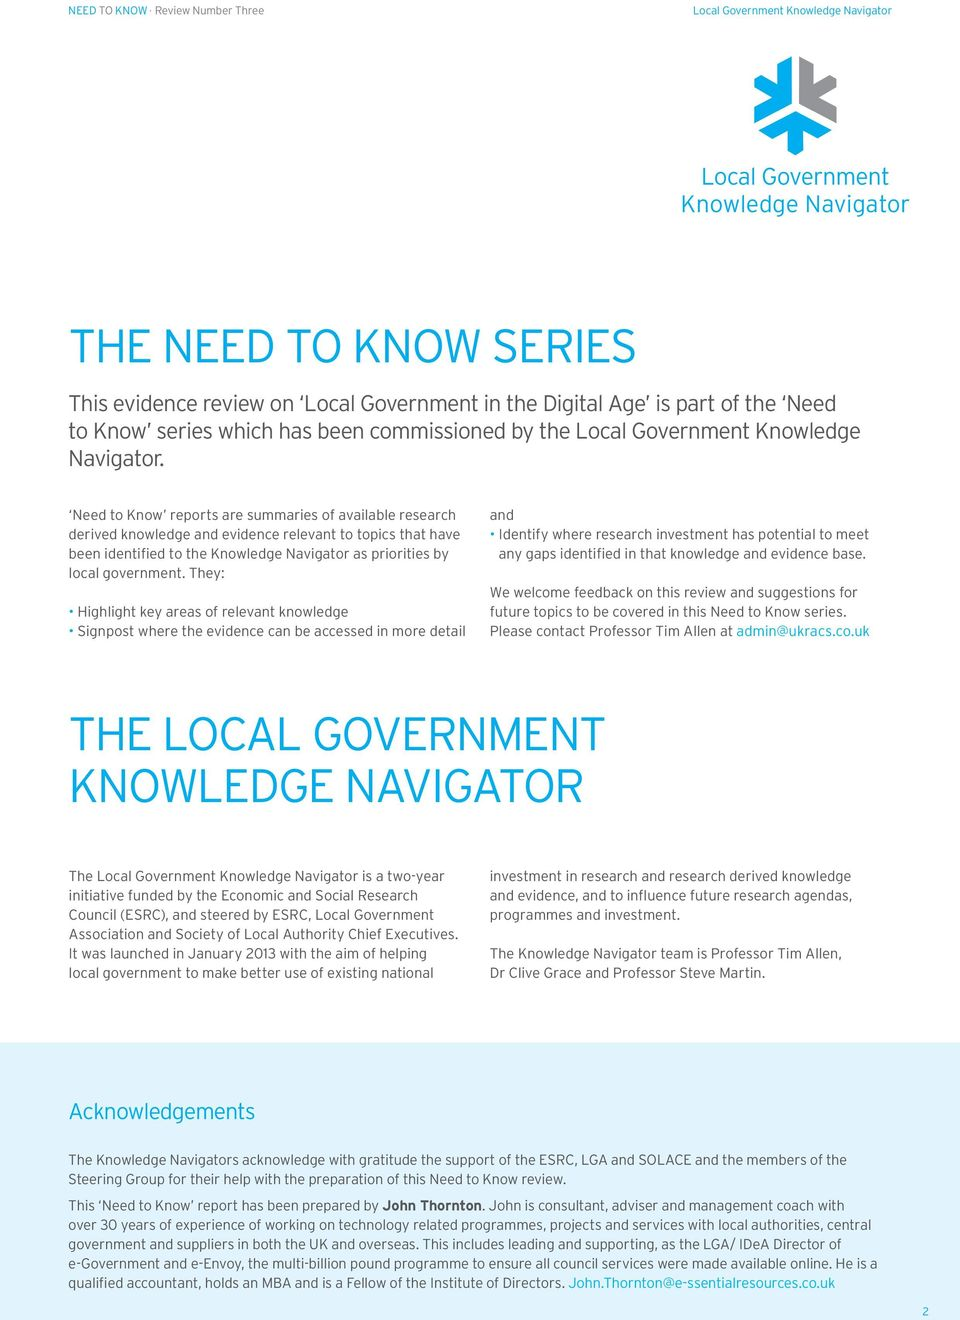 Need to Know reports are summaries of available research derived knowledge and evidence relevant to topics that have been identified to the Knowledge Navigator as priorities by local government.